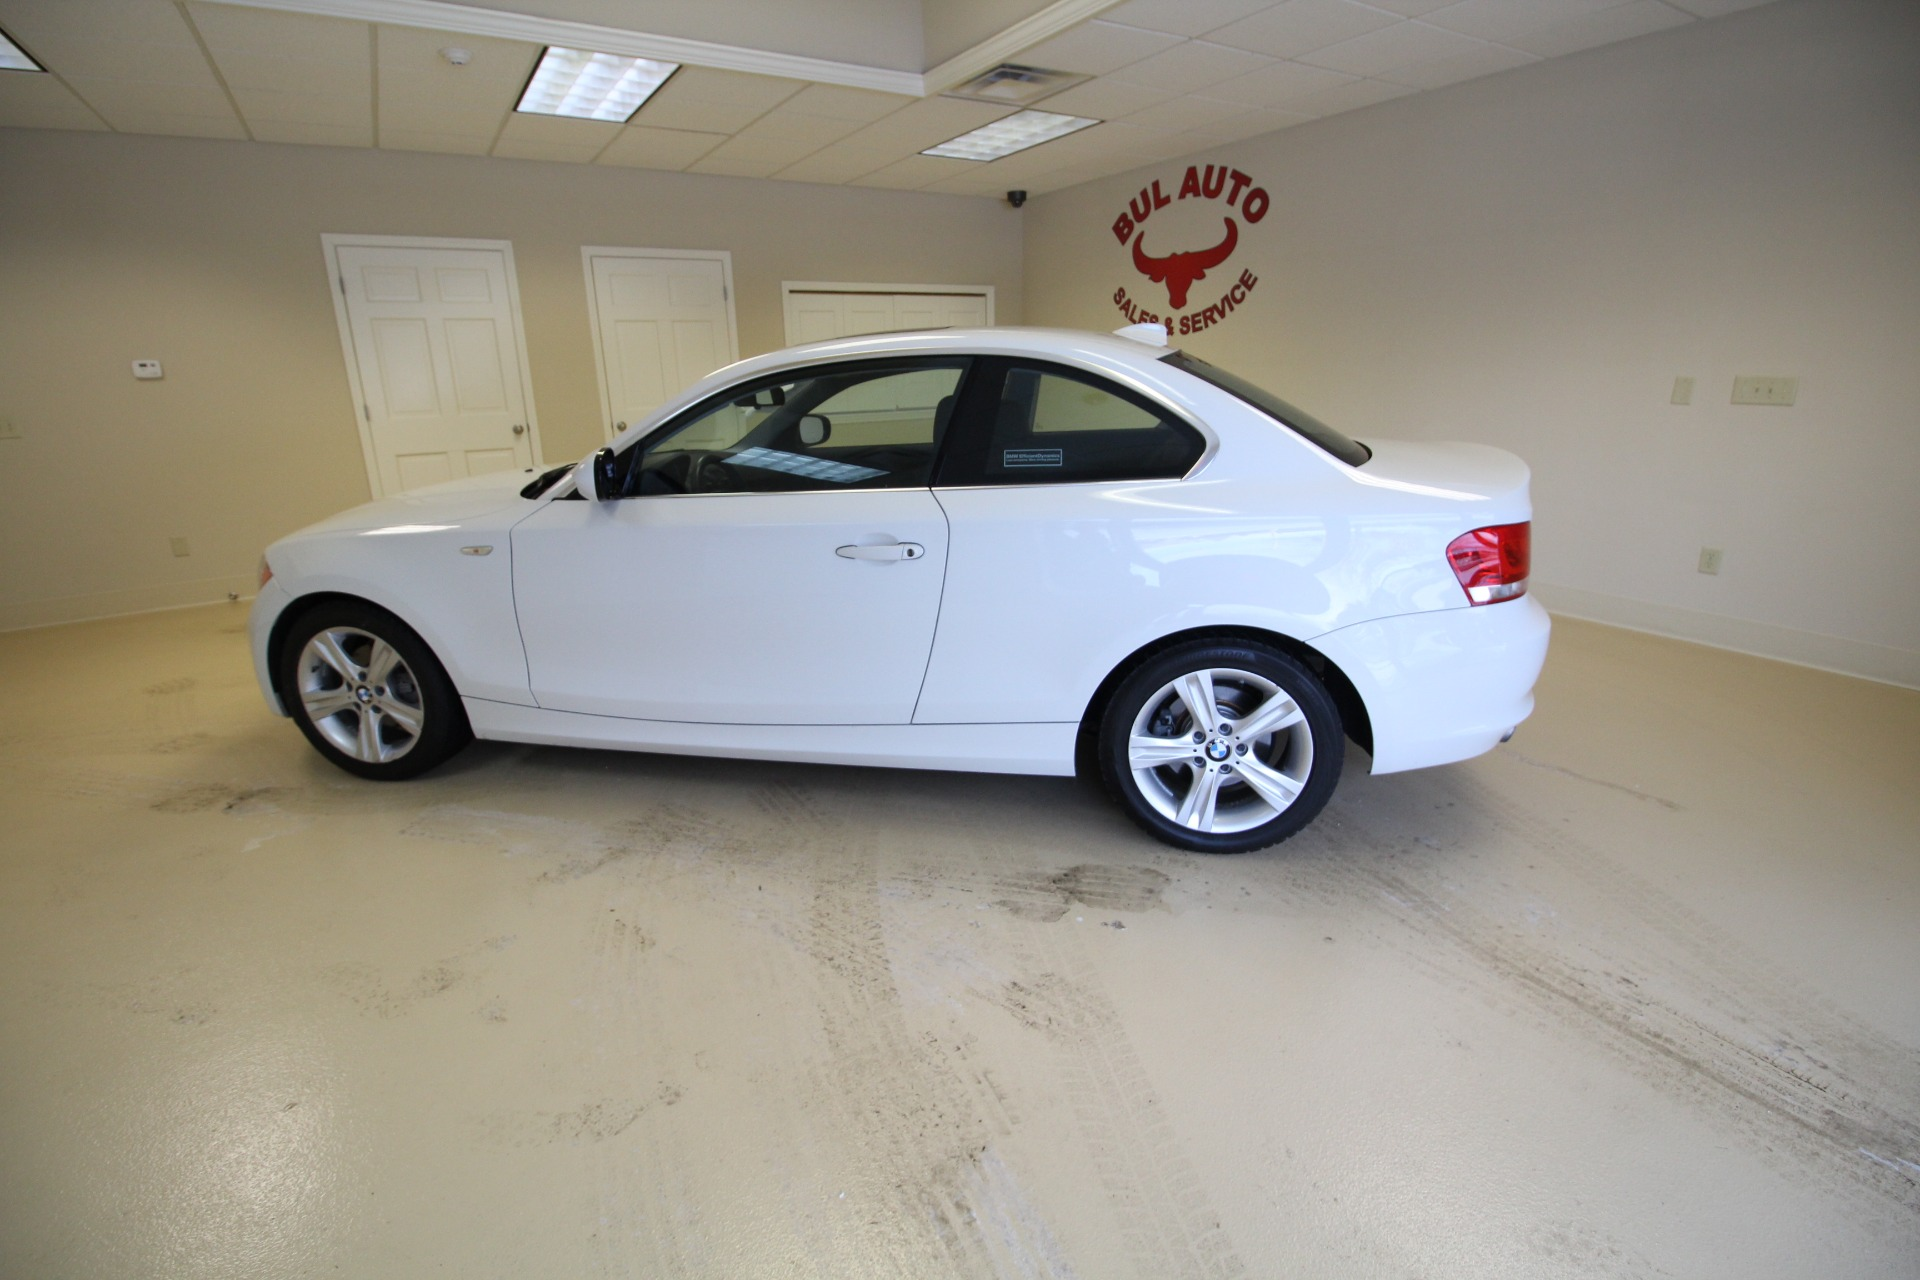 BMW Series I Coupe Stock For Sale Near Albany - 2013 bmw 128i coupe